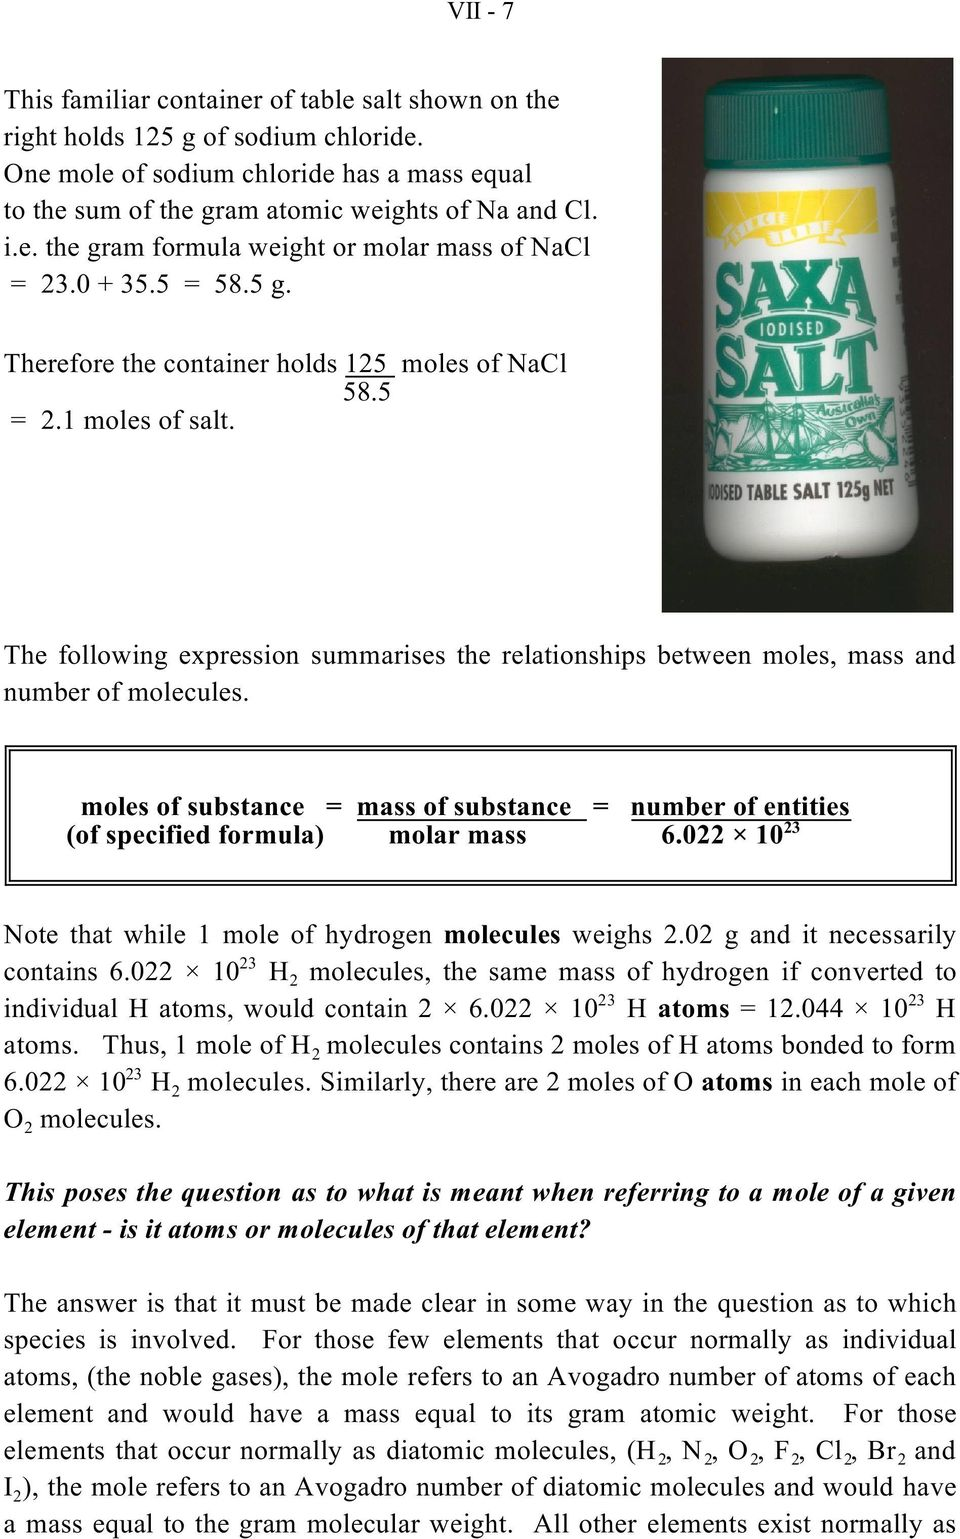 moles of substance = mass of substance = number of entities (of specified formula) molar mass 6.022 10 Note that while 1 mole of hydrogen molecules weighs 2.02 g and it necessarily contains 6.